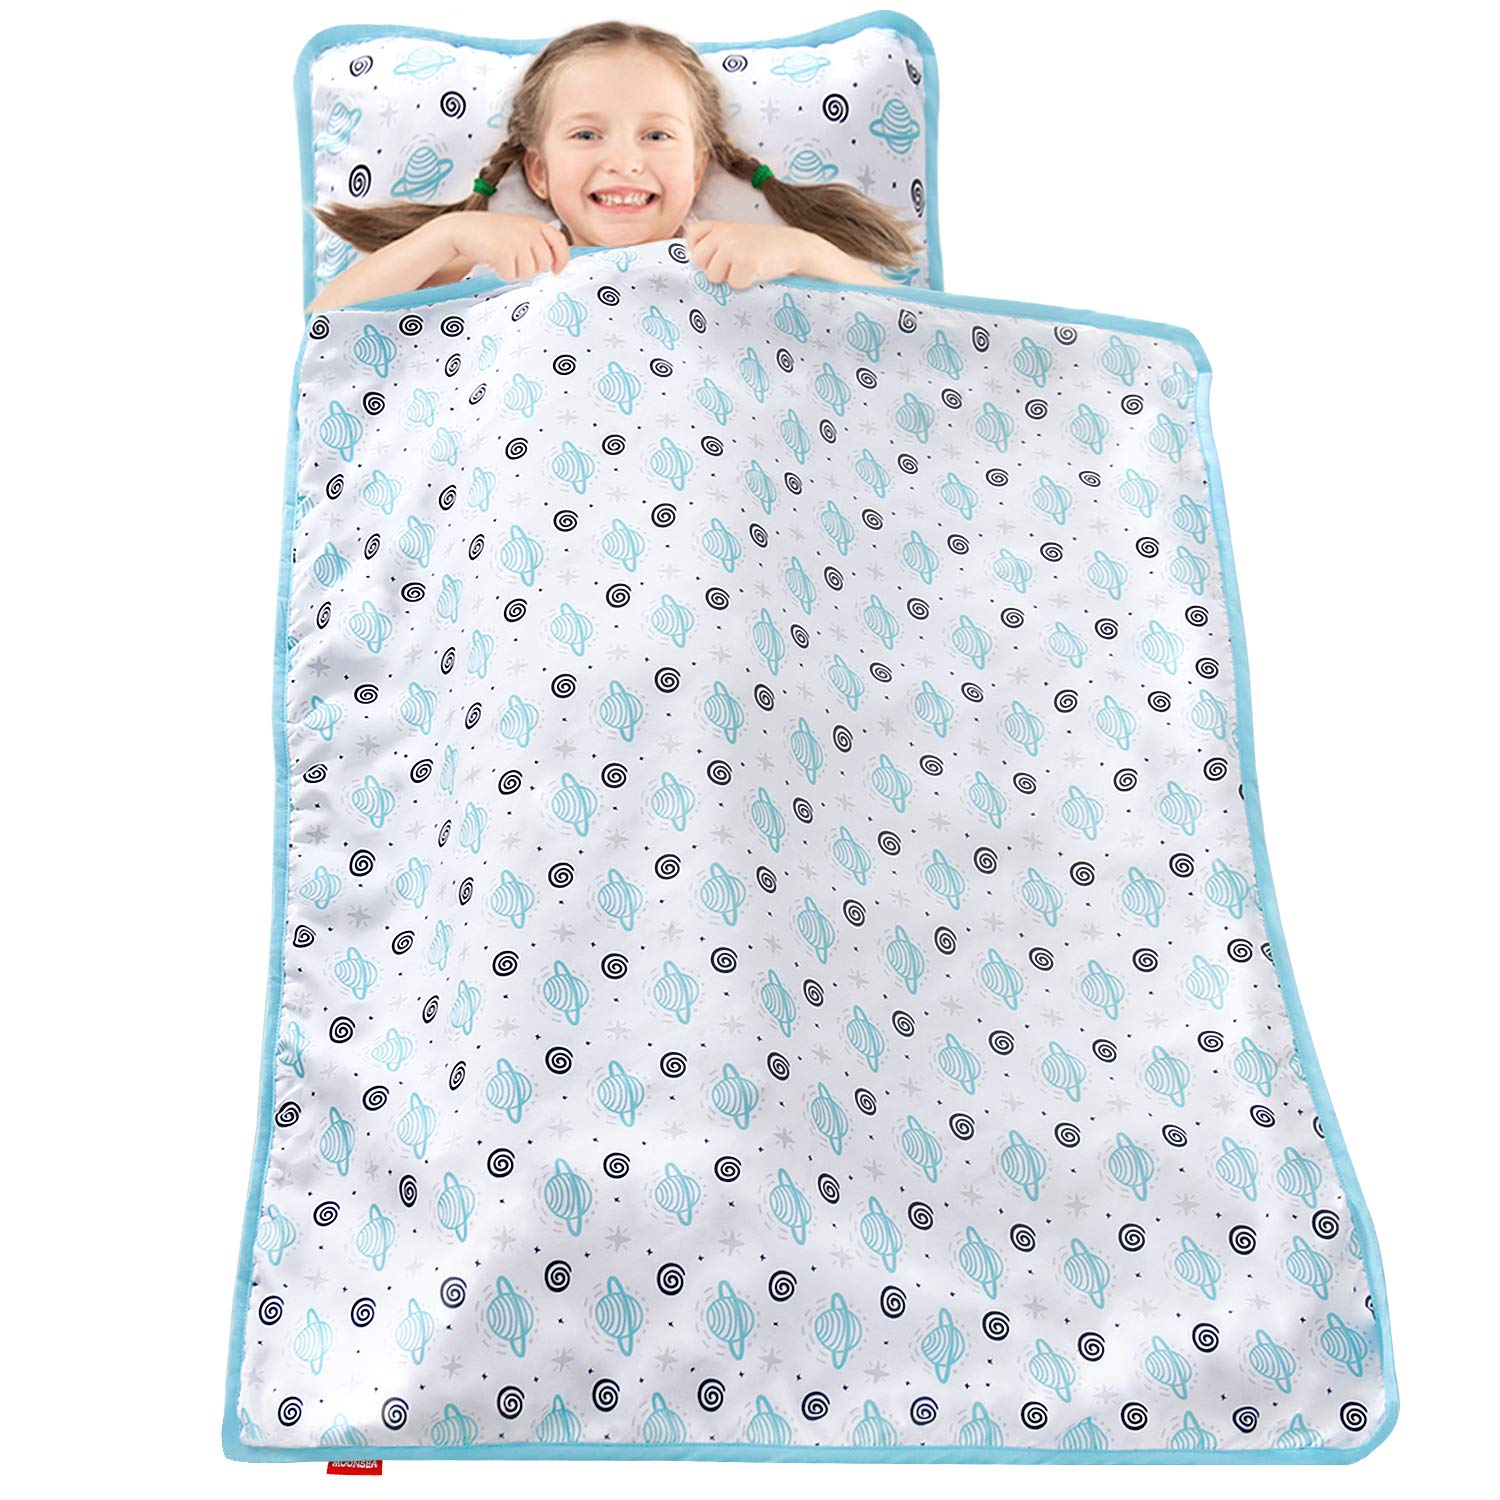 moonsea toddler nap mat with pillow and blanket satellite pattern